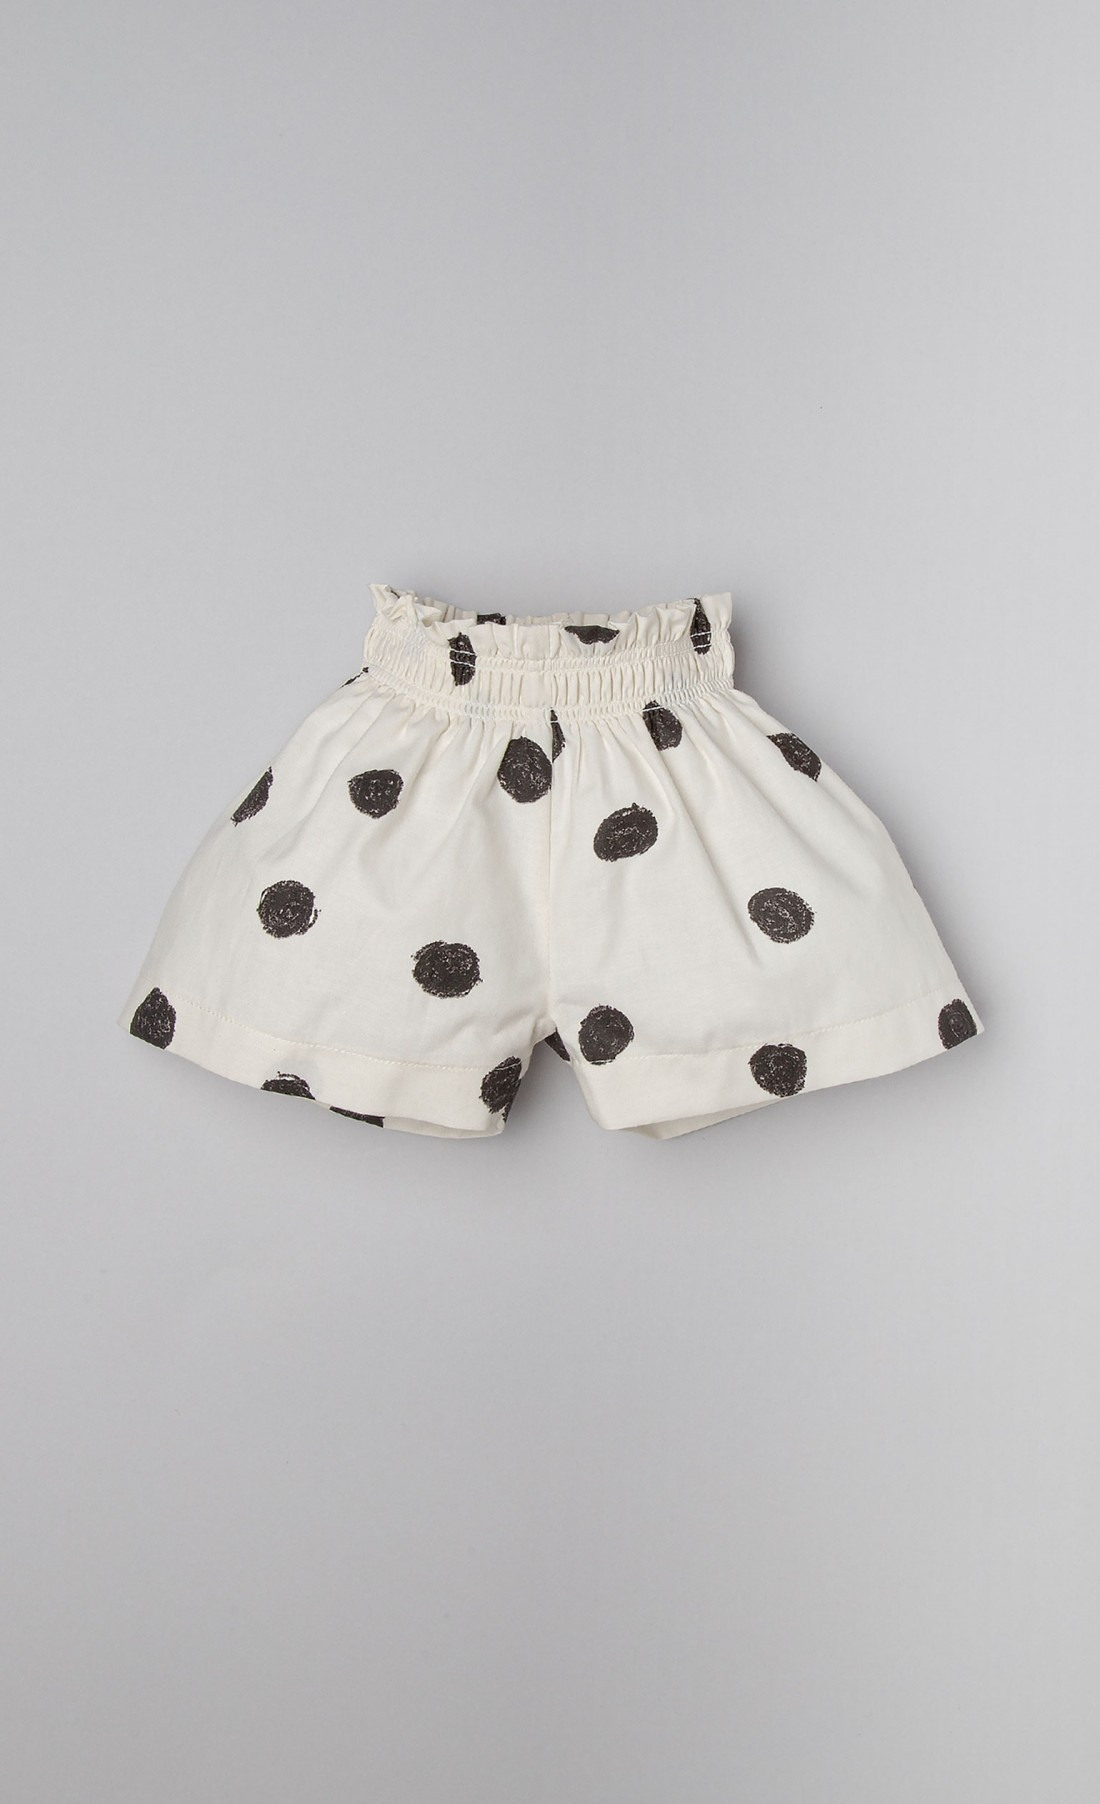 Shorts in cotone panna a pois neri